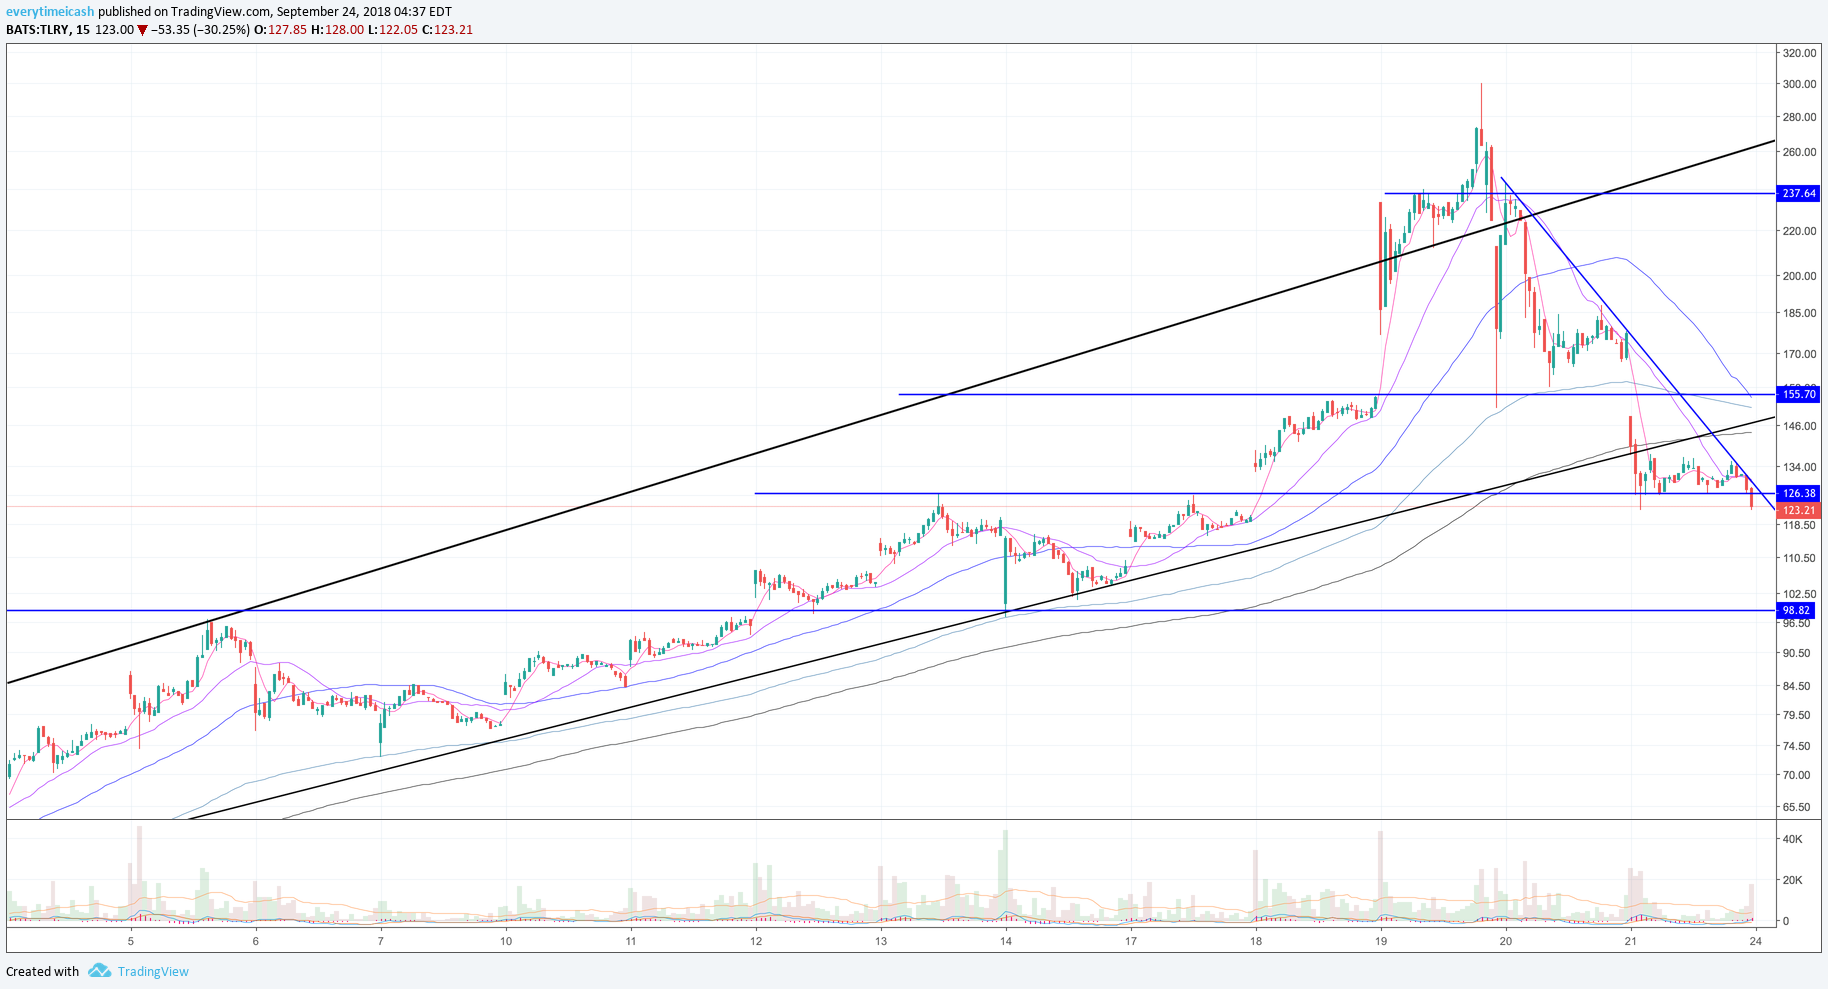 TLRY is now in a downtrend from the breakdown level